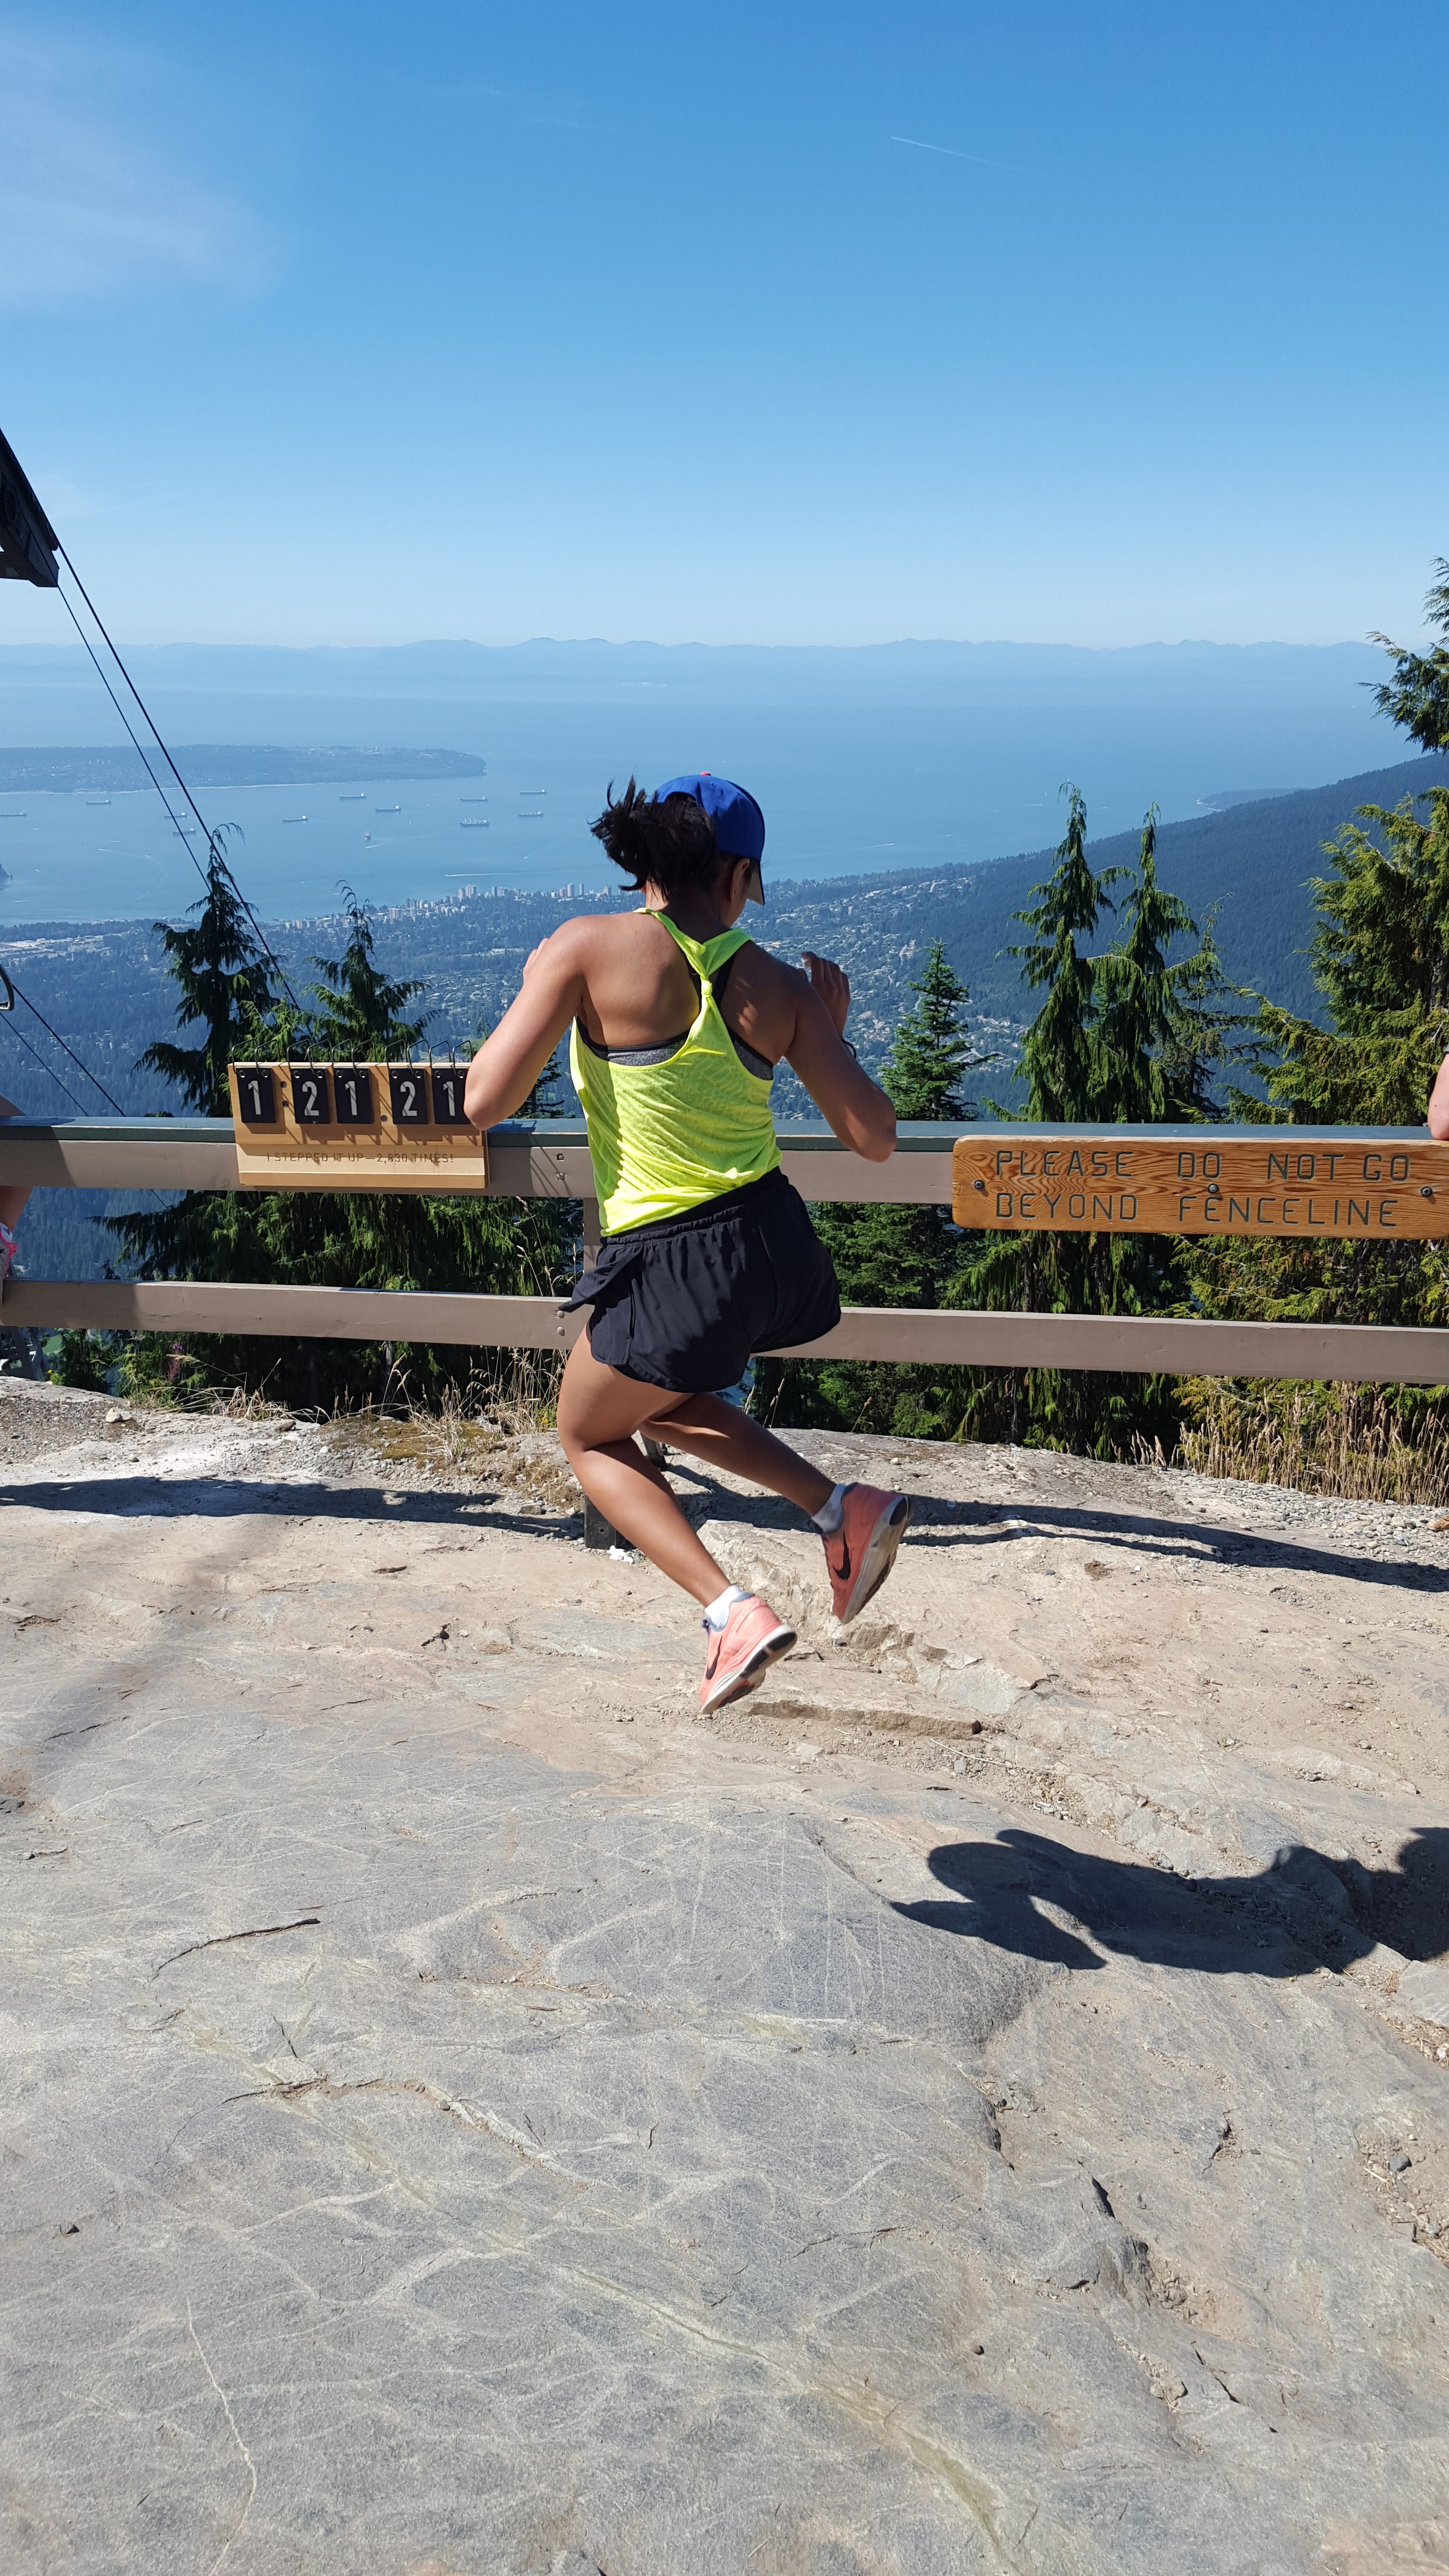 Grouse Mountain - Grouse Grind